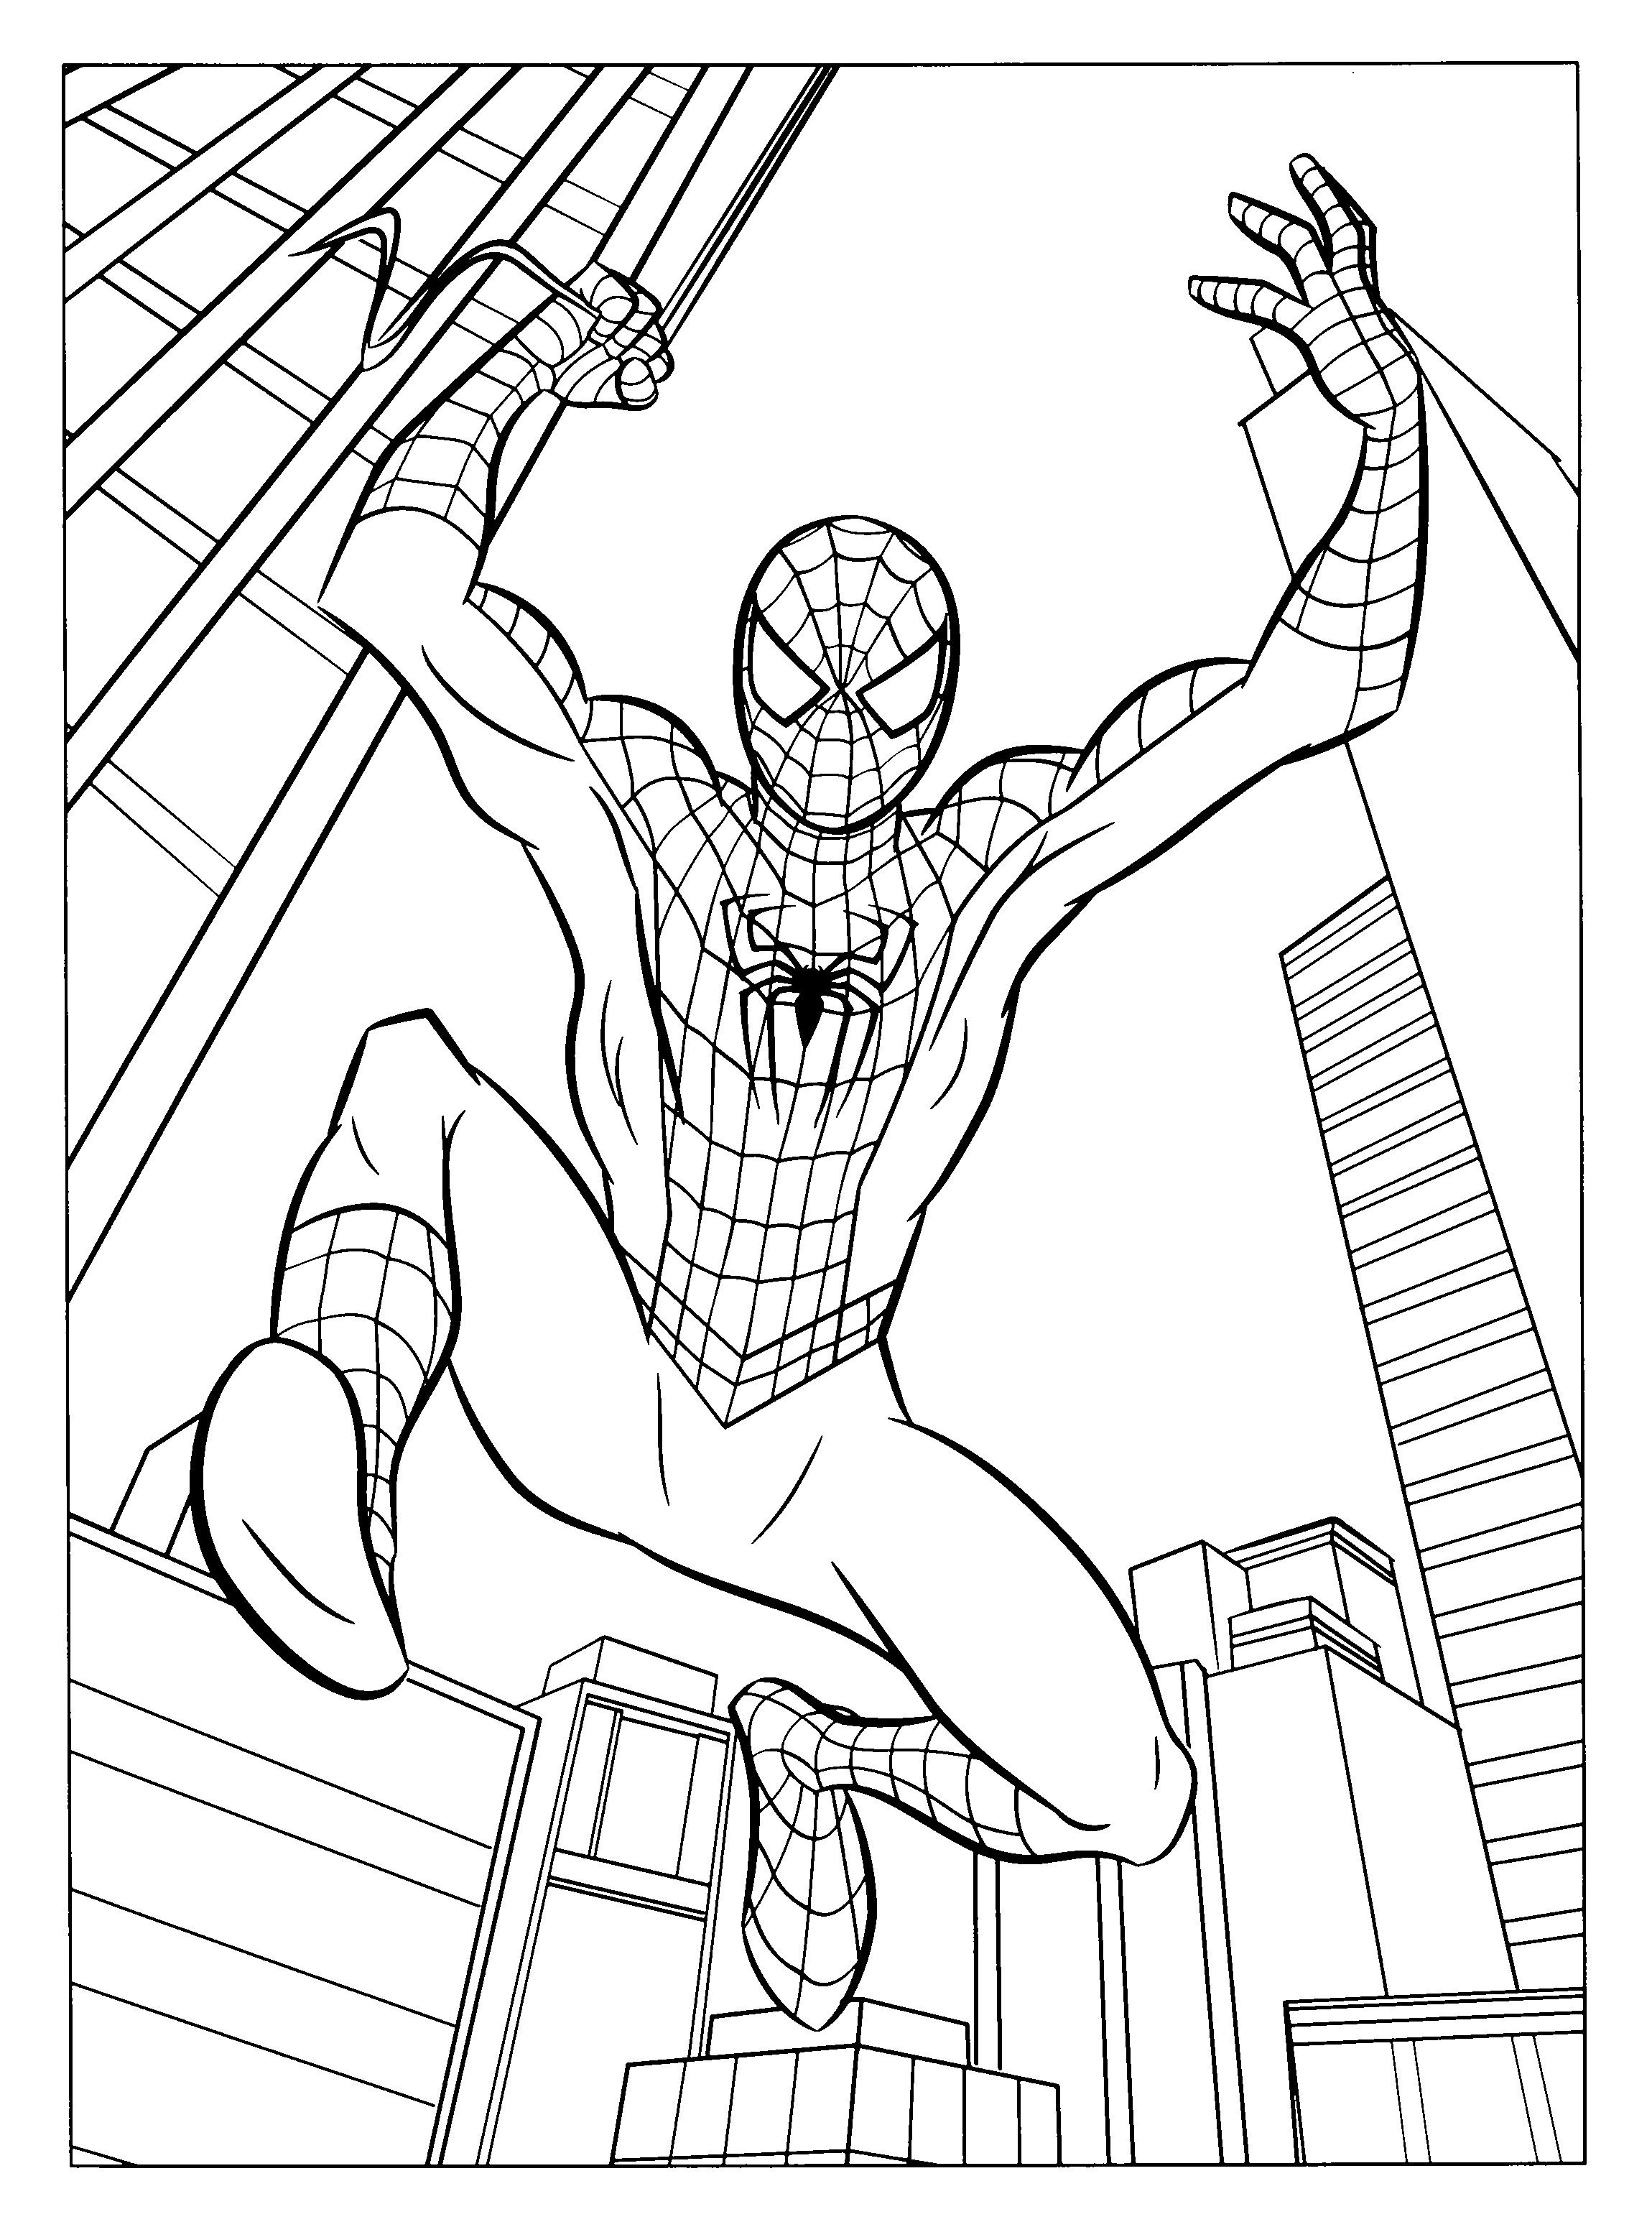 printable spiderman coloring pages for kids cool2bkids just things pinterest spiderman birthdays and craft